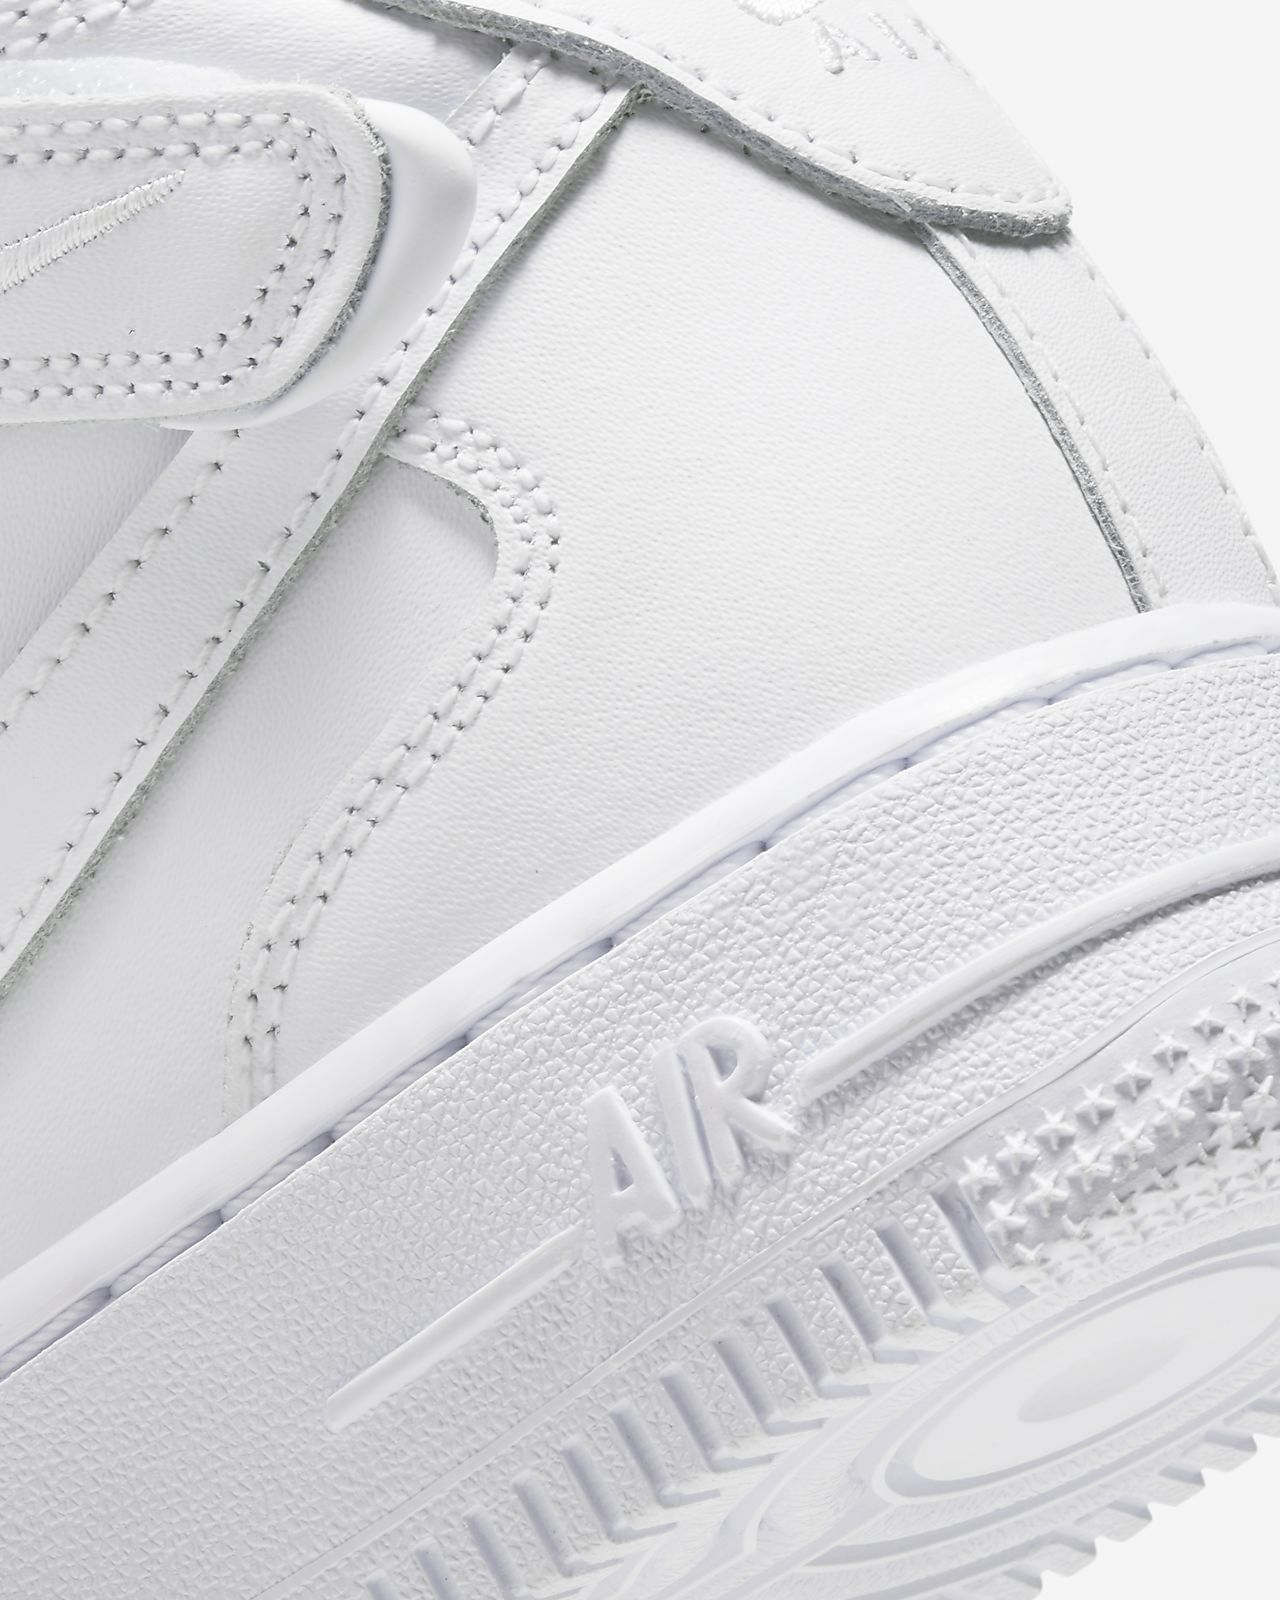 Kids NIKE AIR FORCE 1 One Size 6.5Y AF1 '82 WHITE Womens